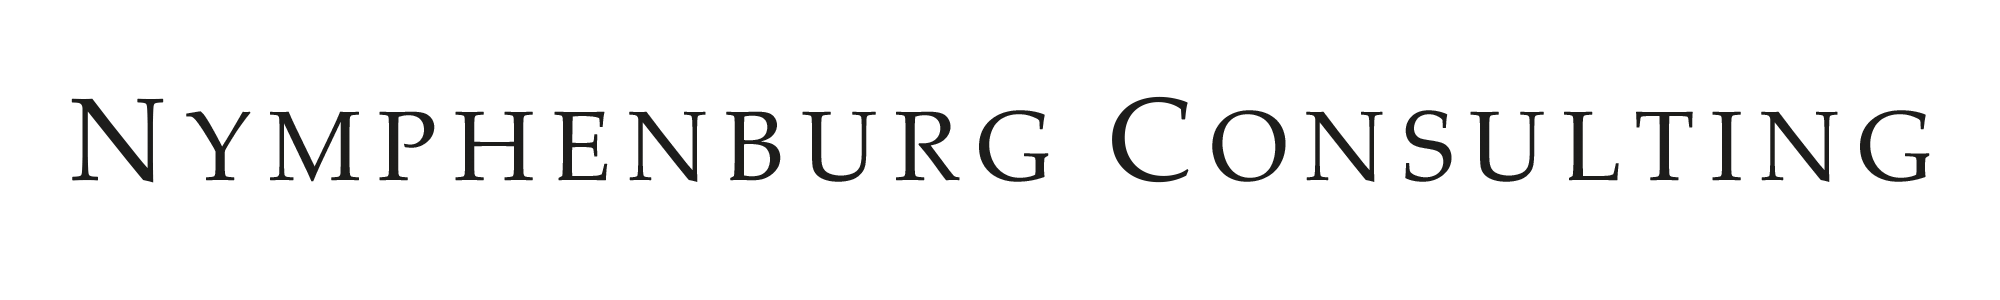 Nymphenburg Consulting